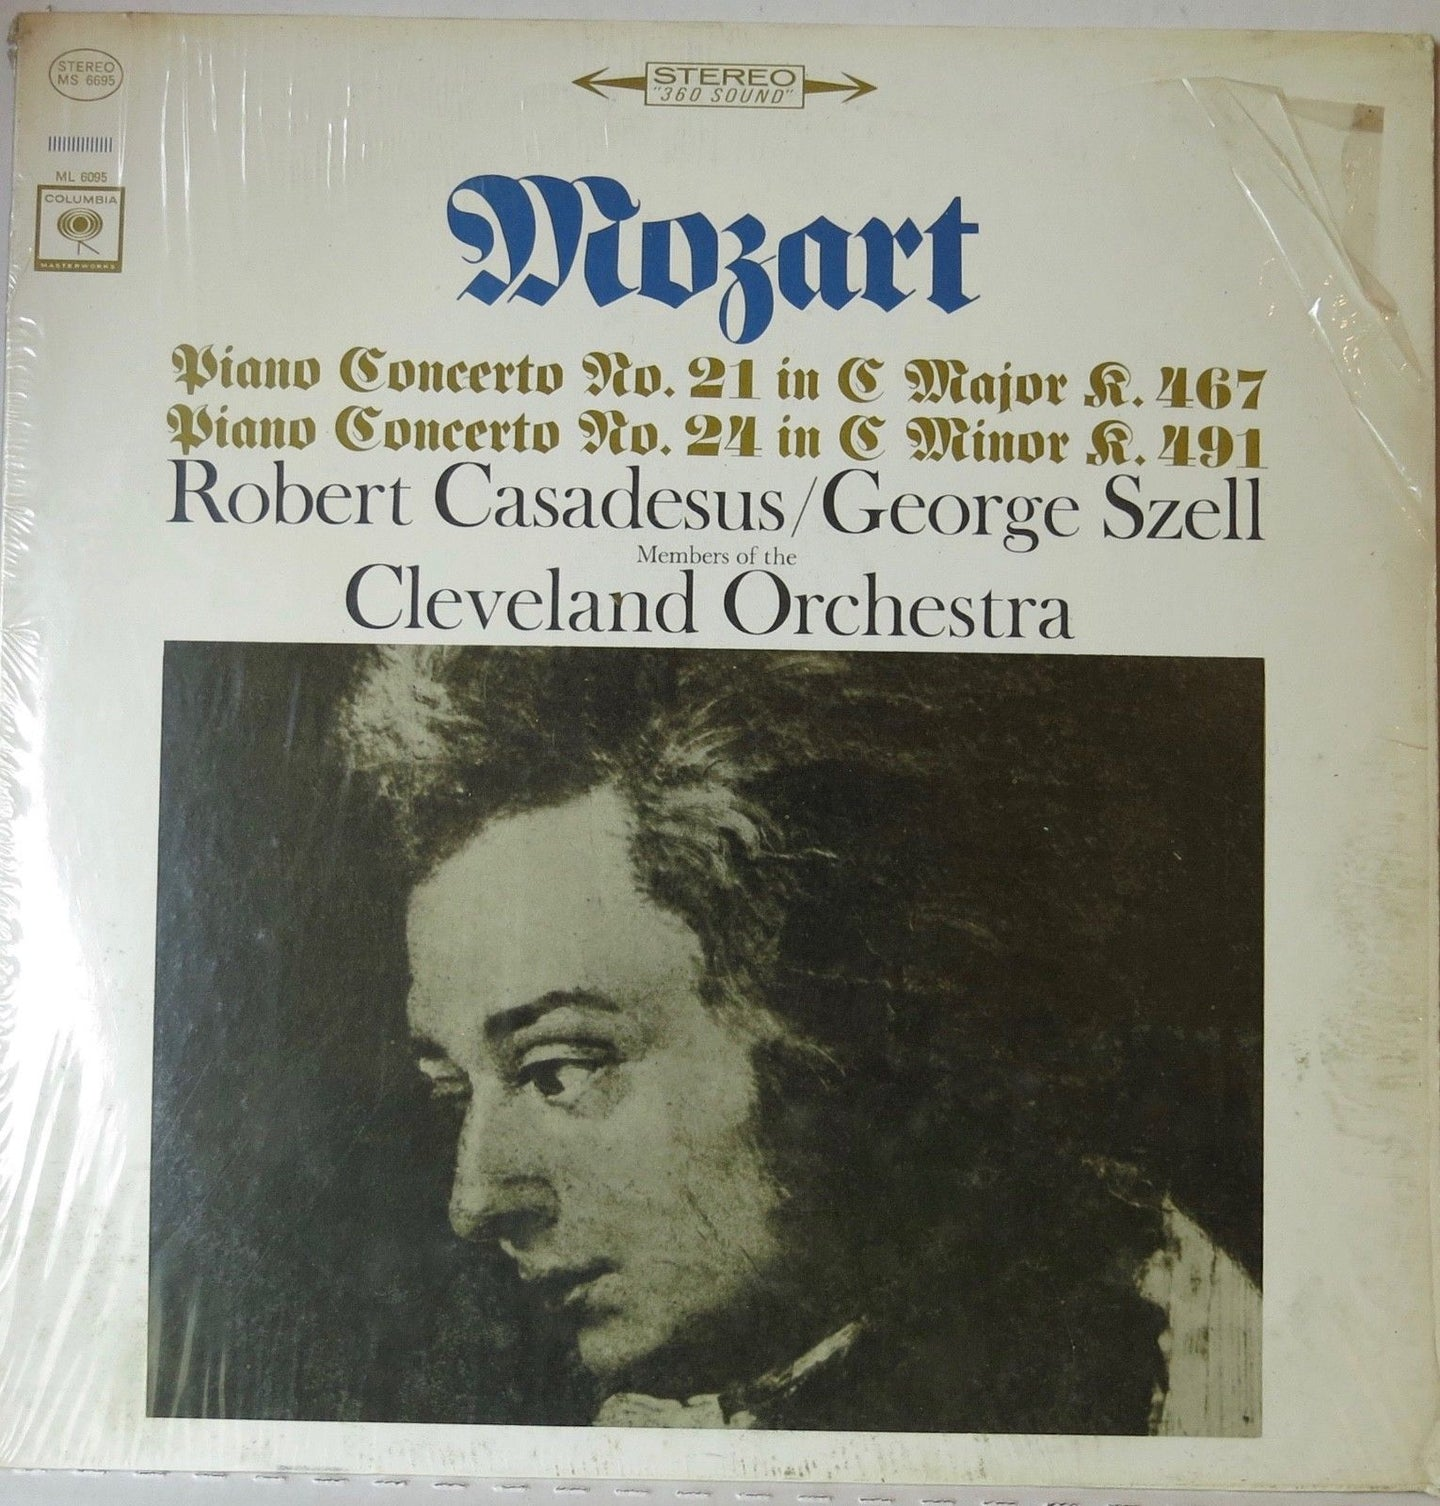 Mozart Piano Concerto 21 and 24 - Friedman & Sons